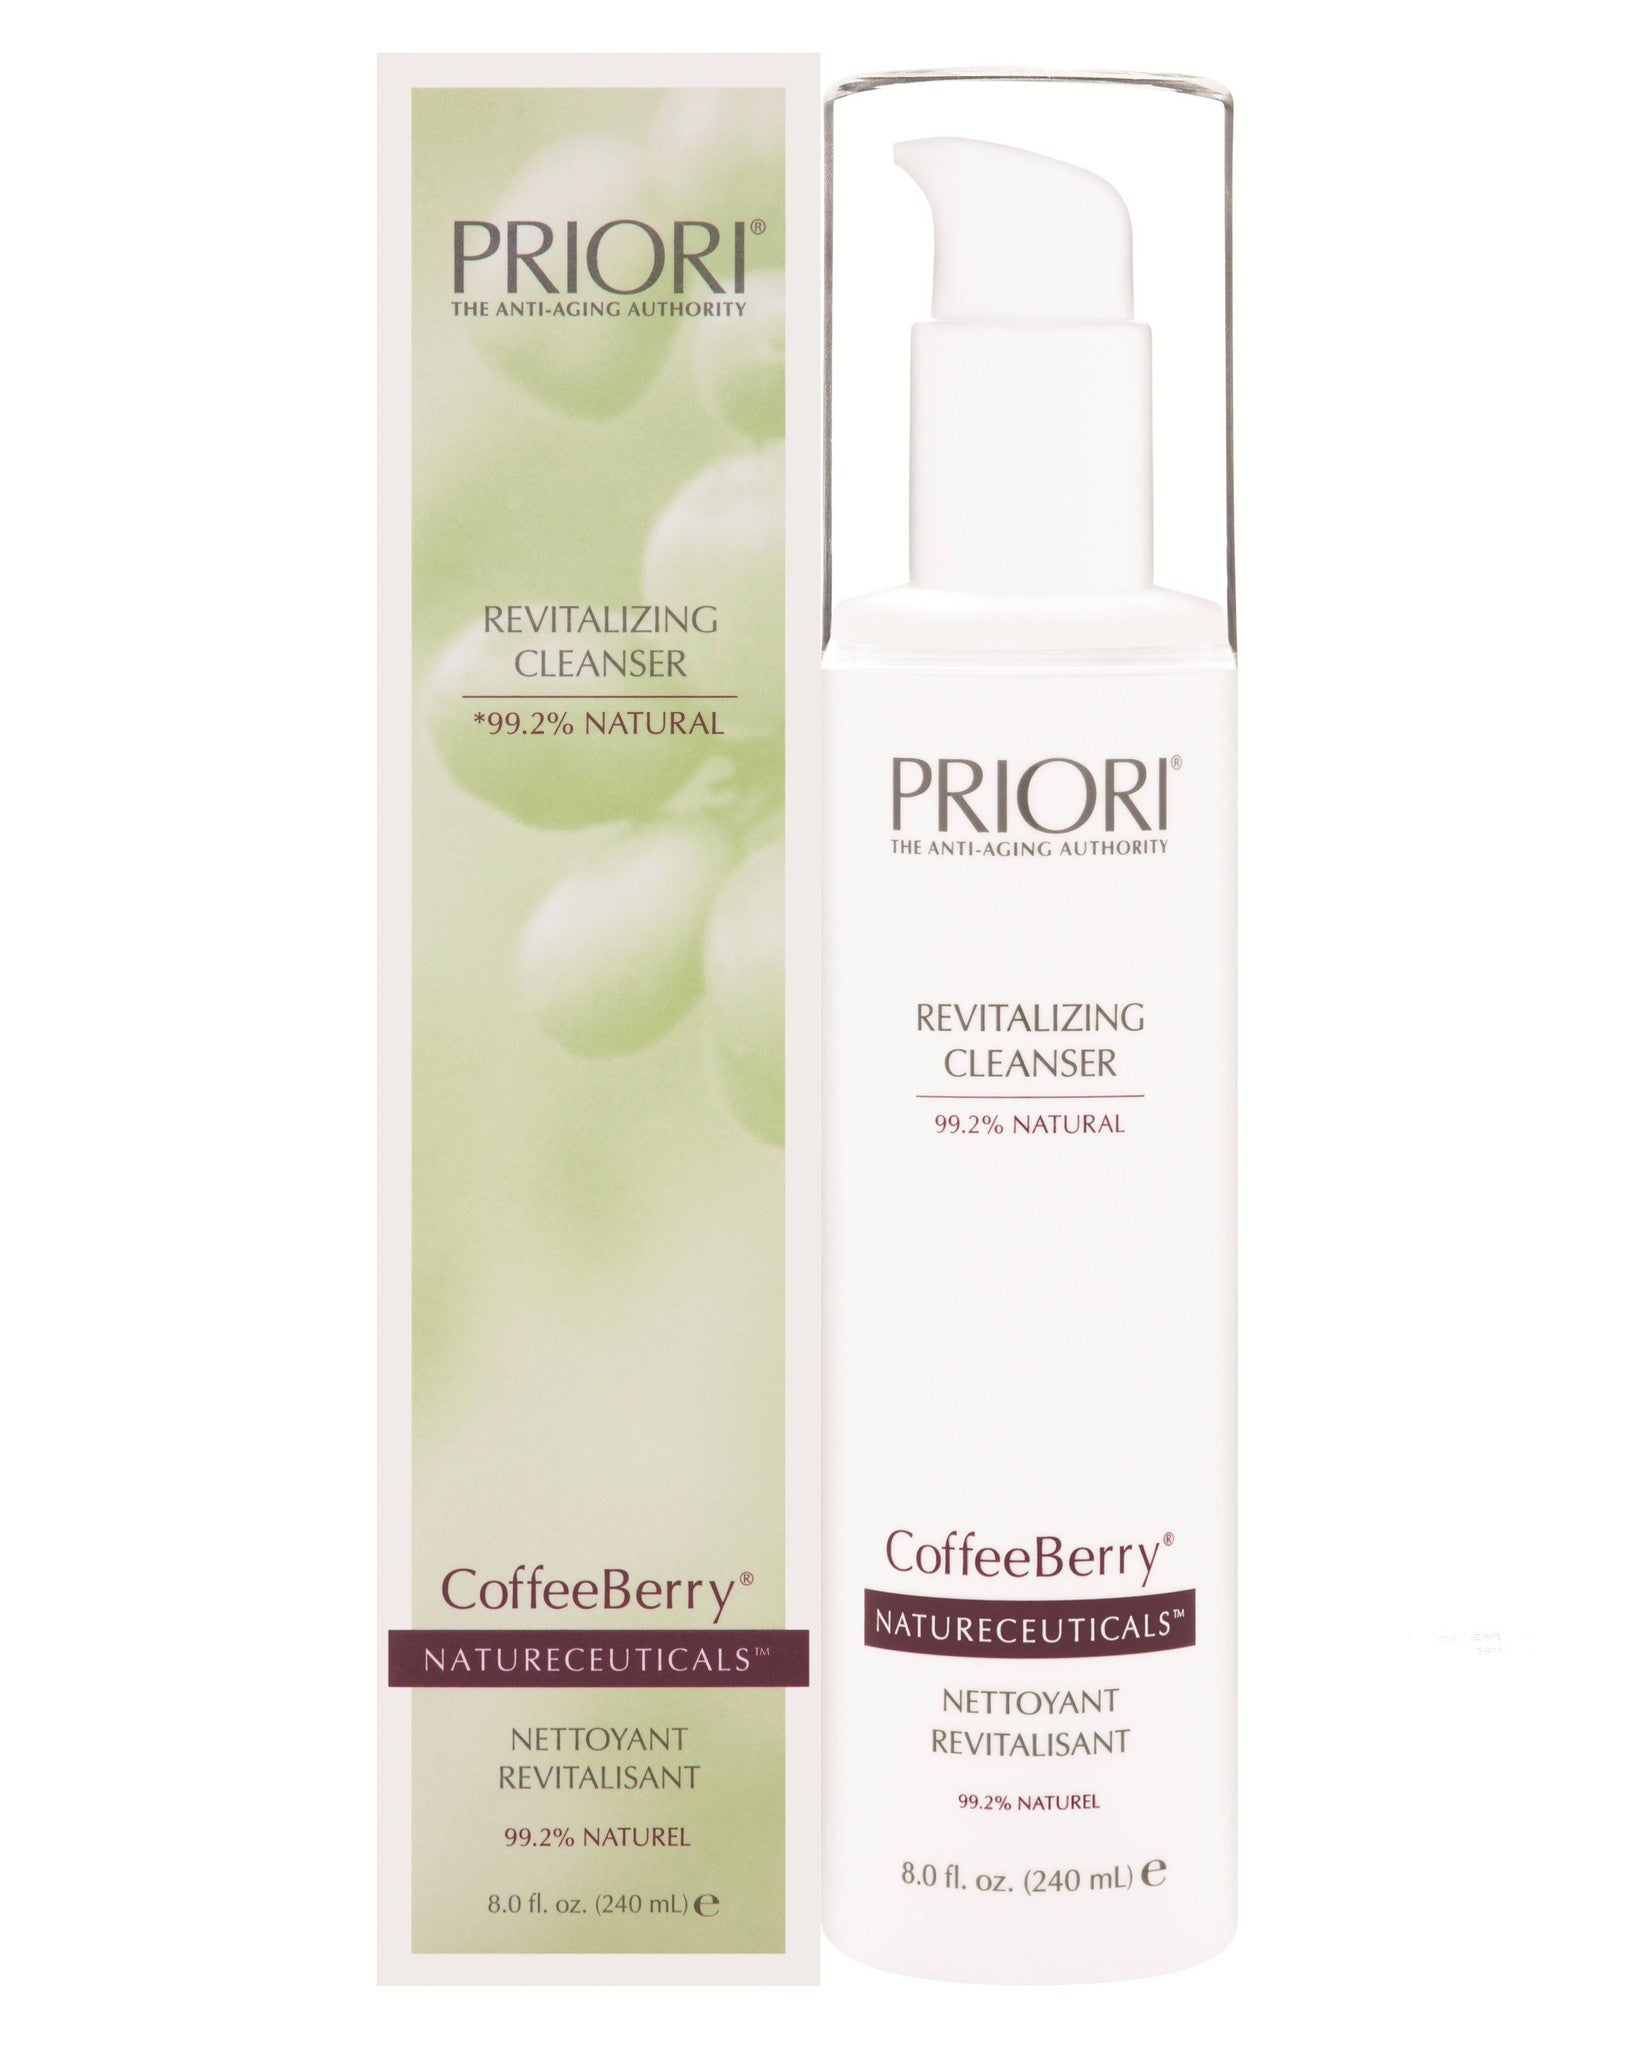 Priori CoffeeBerry Natureceuticals Revitalizing Cleanser, 8oz (240mL)